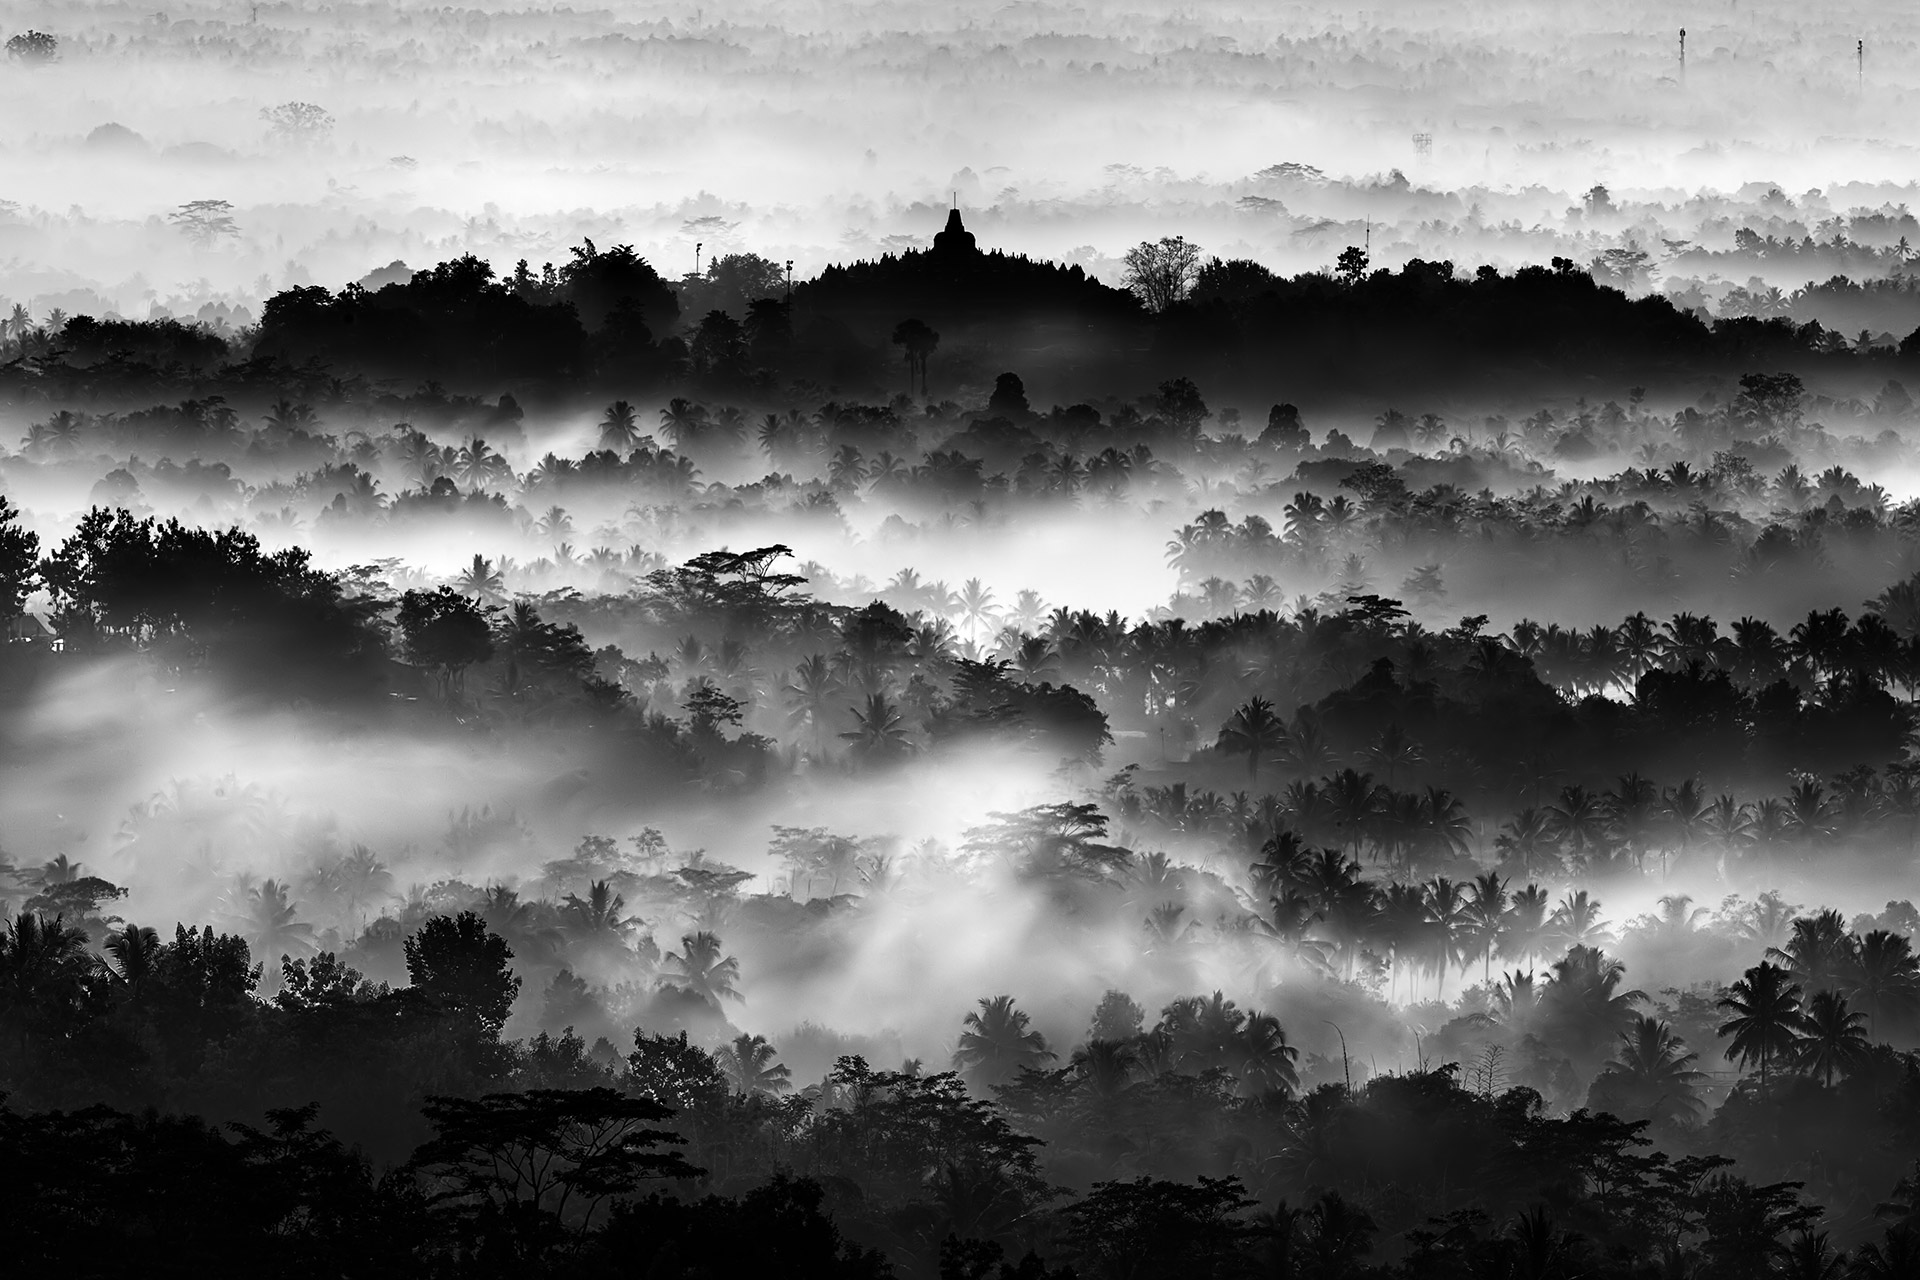 Mystical Borobudur, © Handi Laksono, Indonesia, Grand Prize, Nature's Best Photography Asia